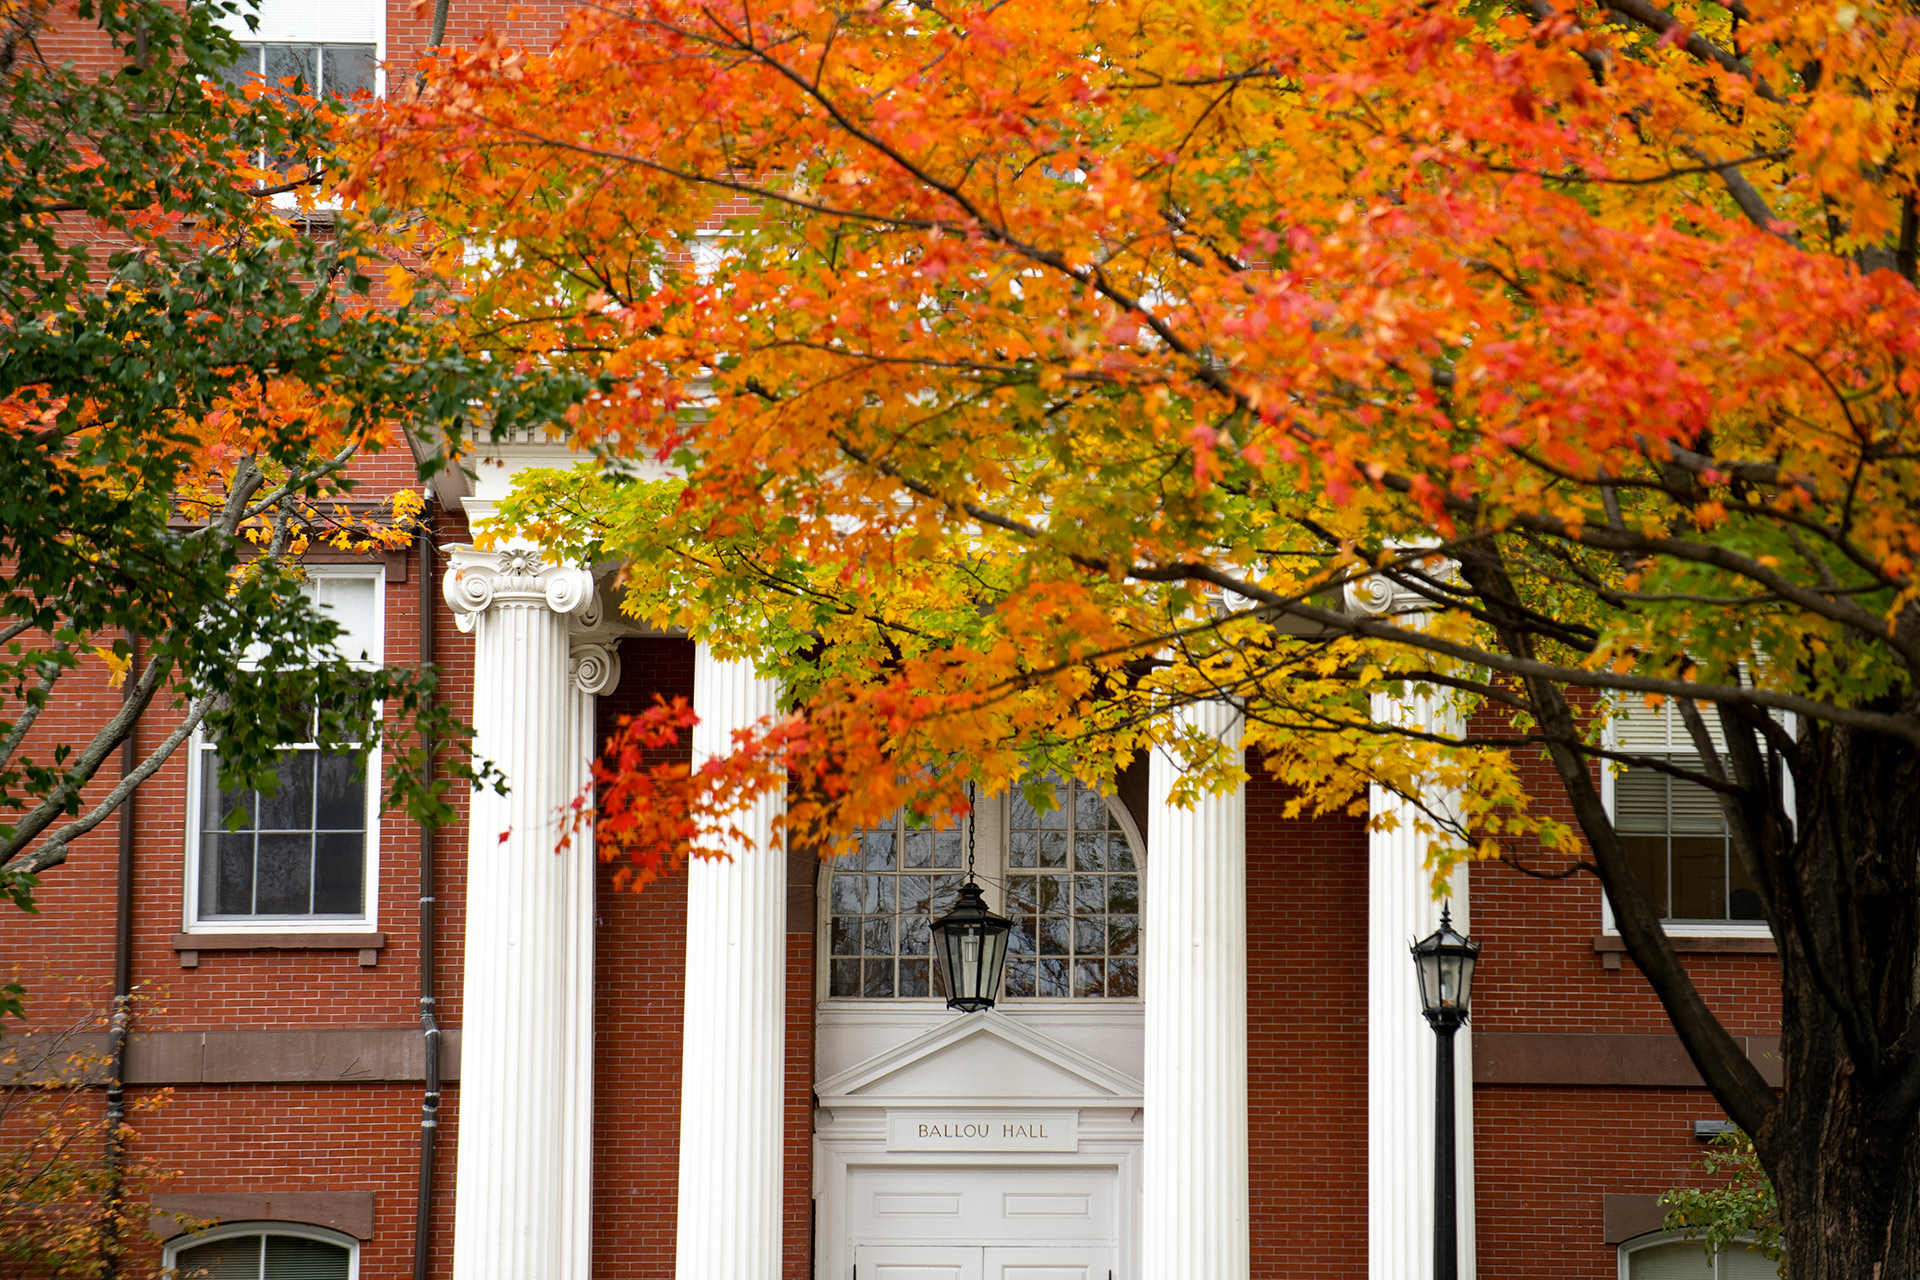 Columns of Ballou in the fall